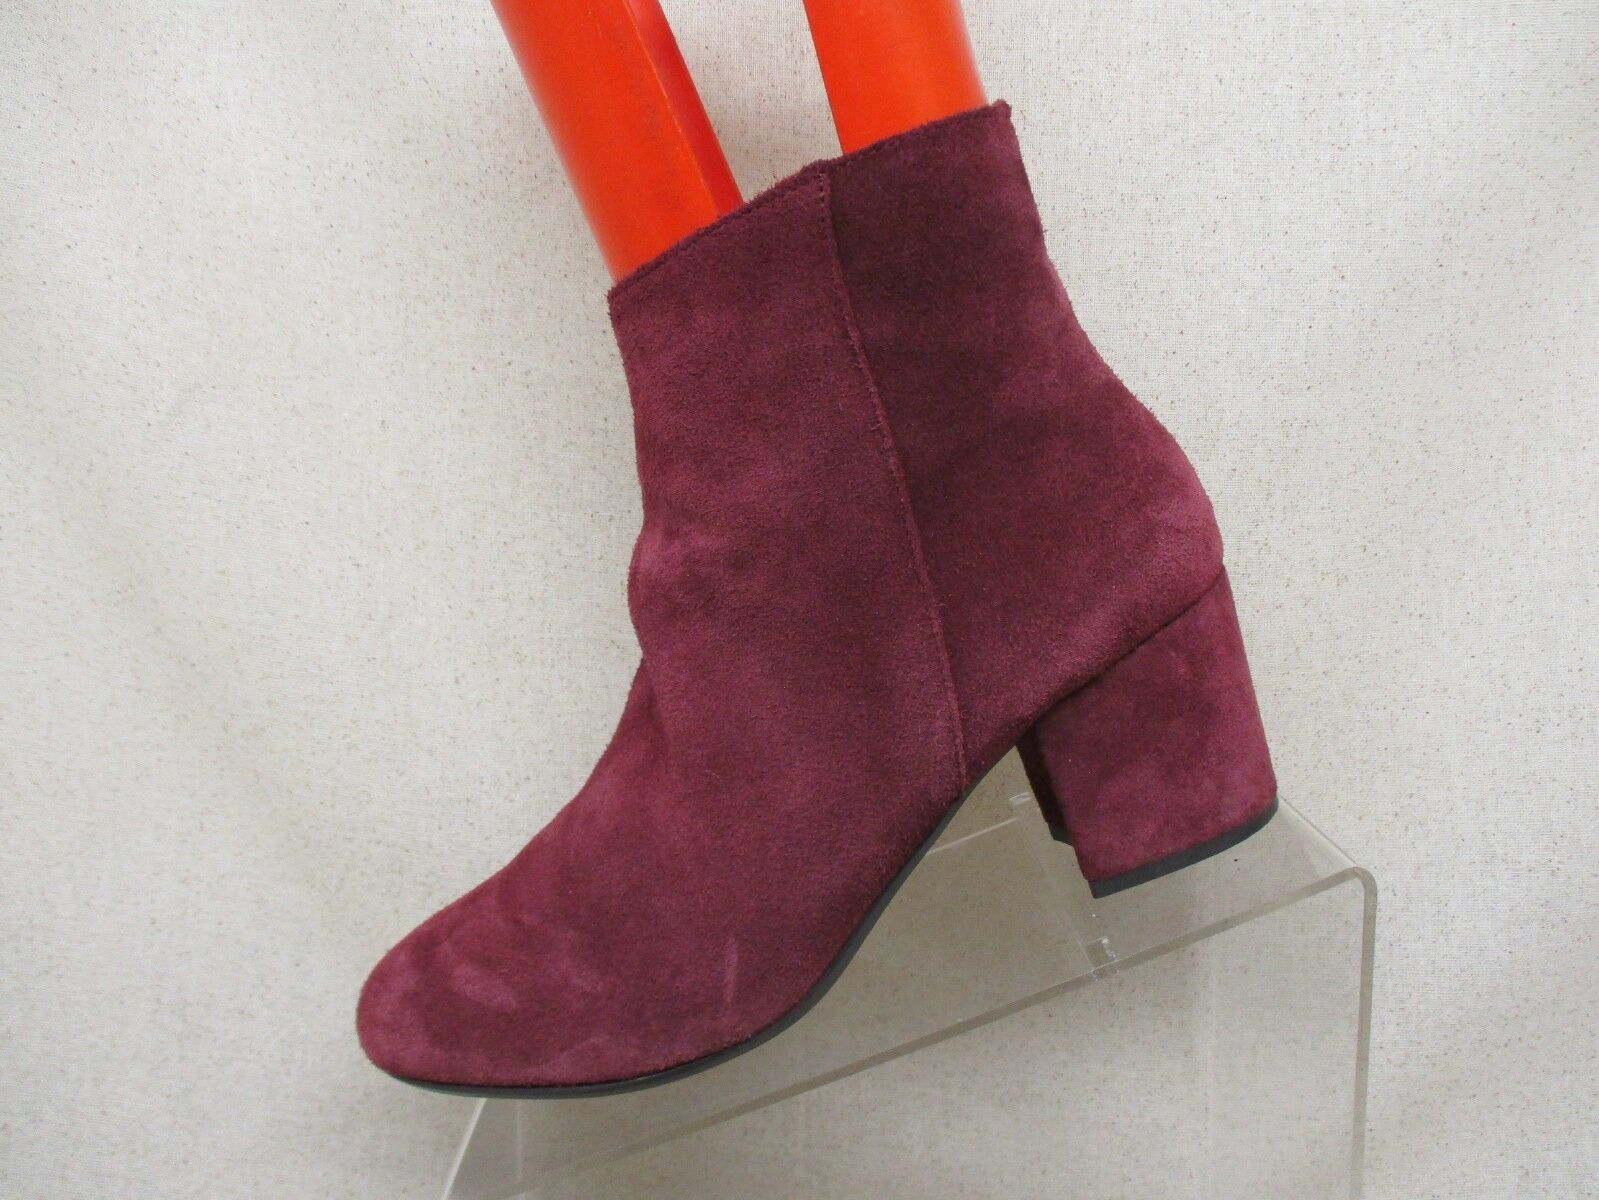 Steve Madden Purple Suede Side Zip Ankle Fashion Boots Bootie Size 9.5 B